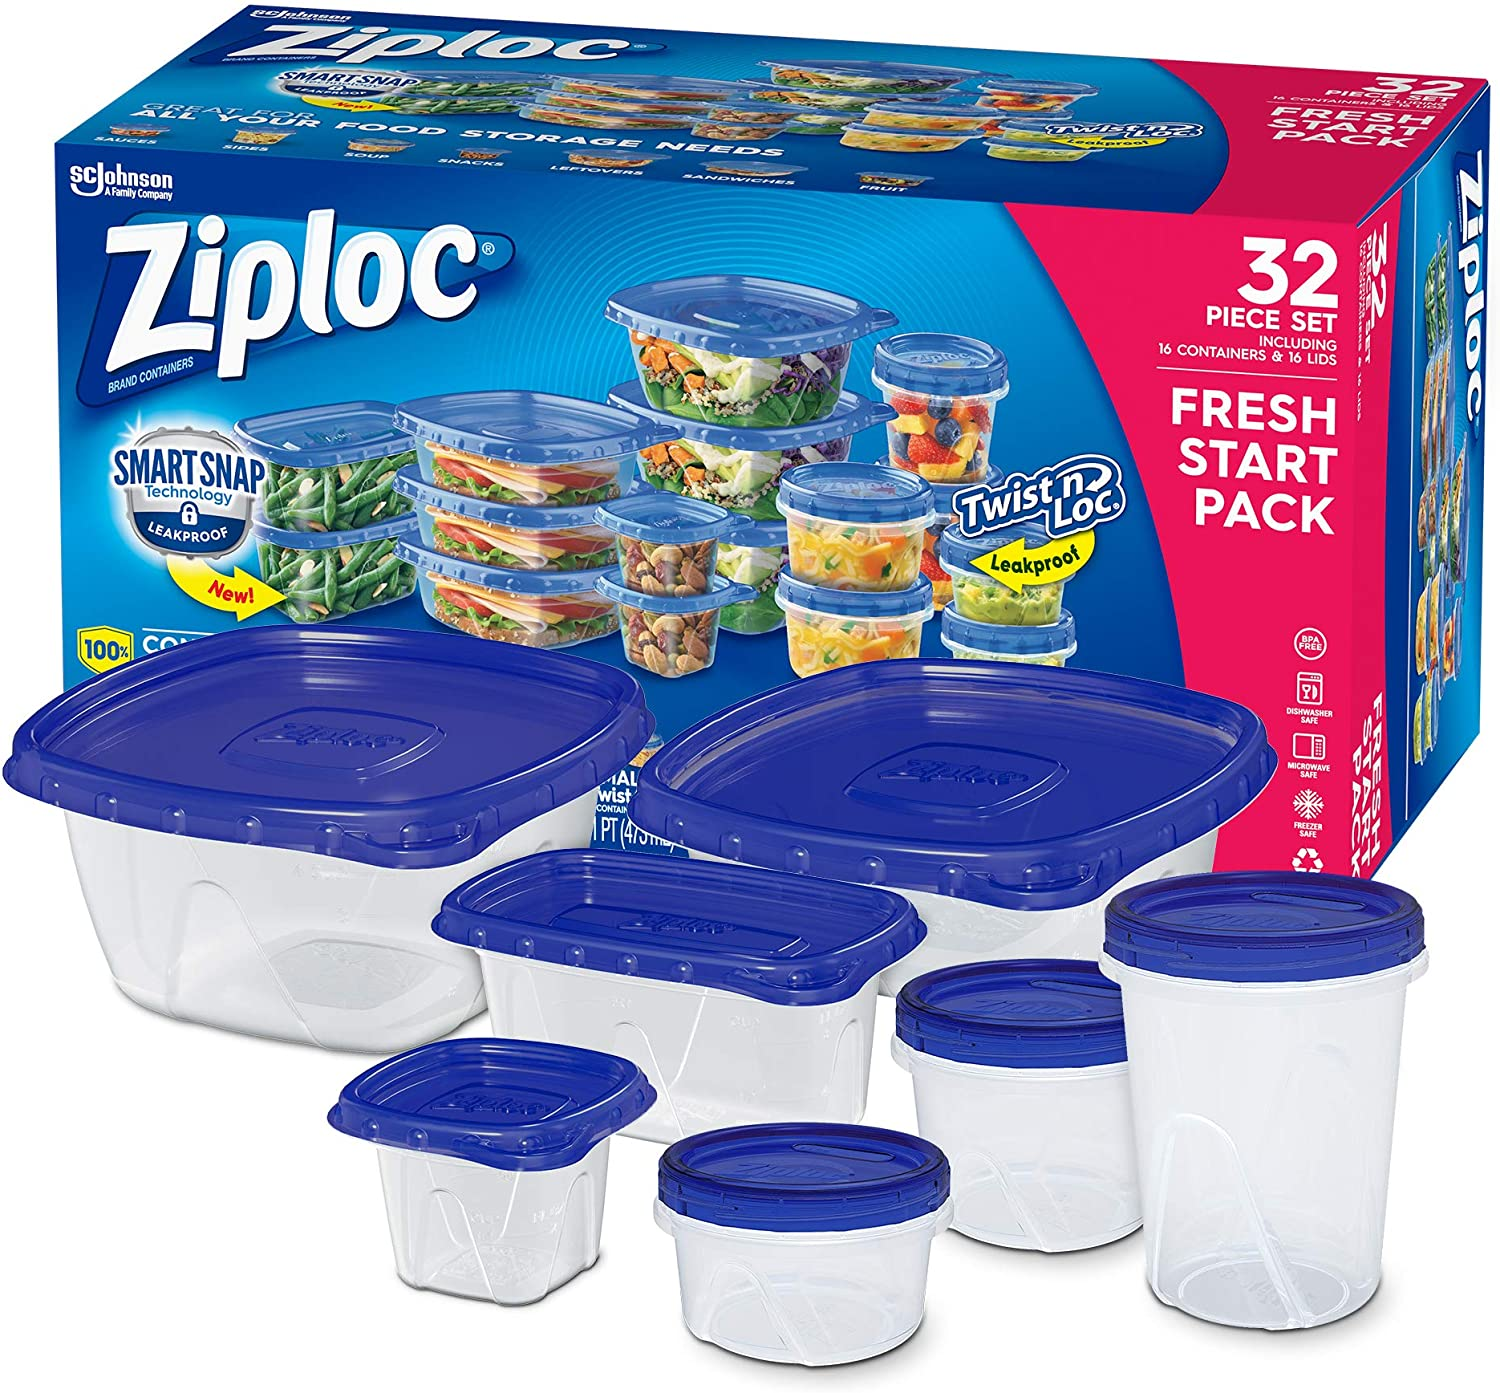 Ziploc Food Storage Meal Prep Containers with Smart Snap Technology, Dishwasher Safe, Variety Pack, 16 Count